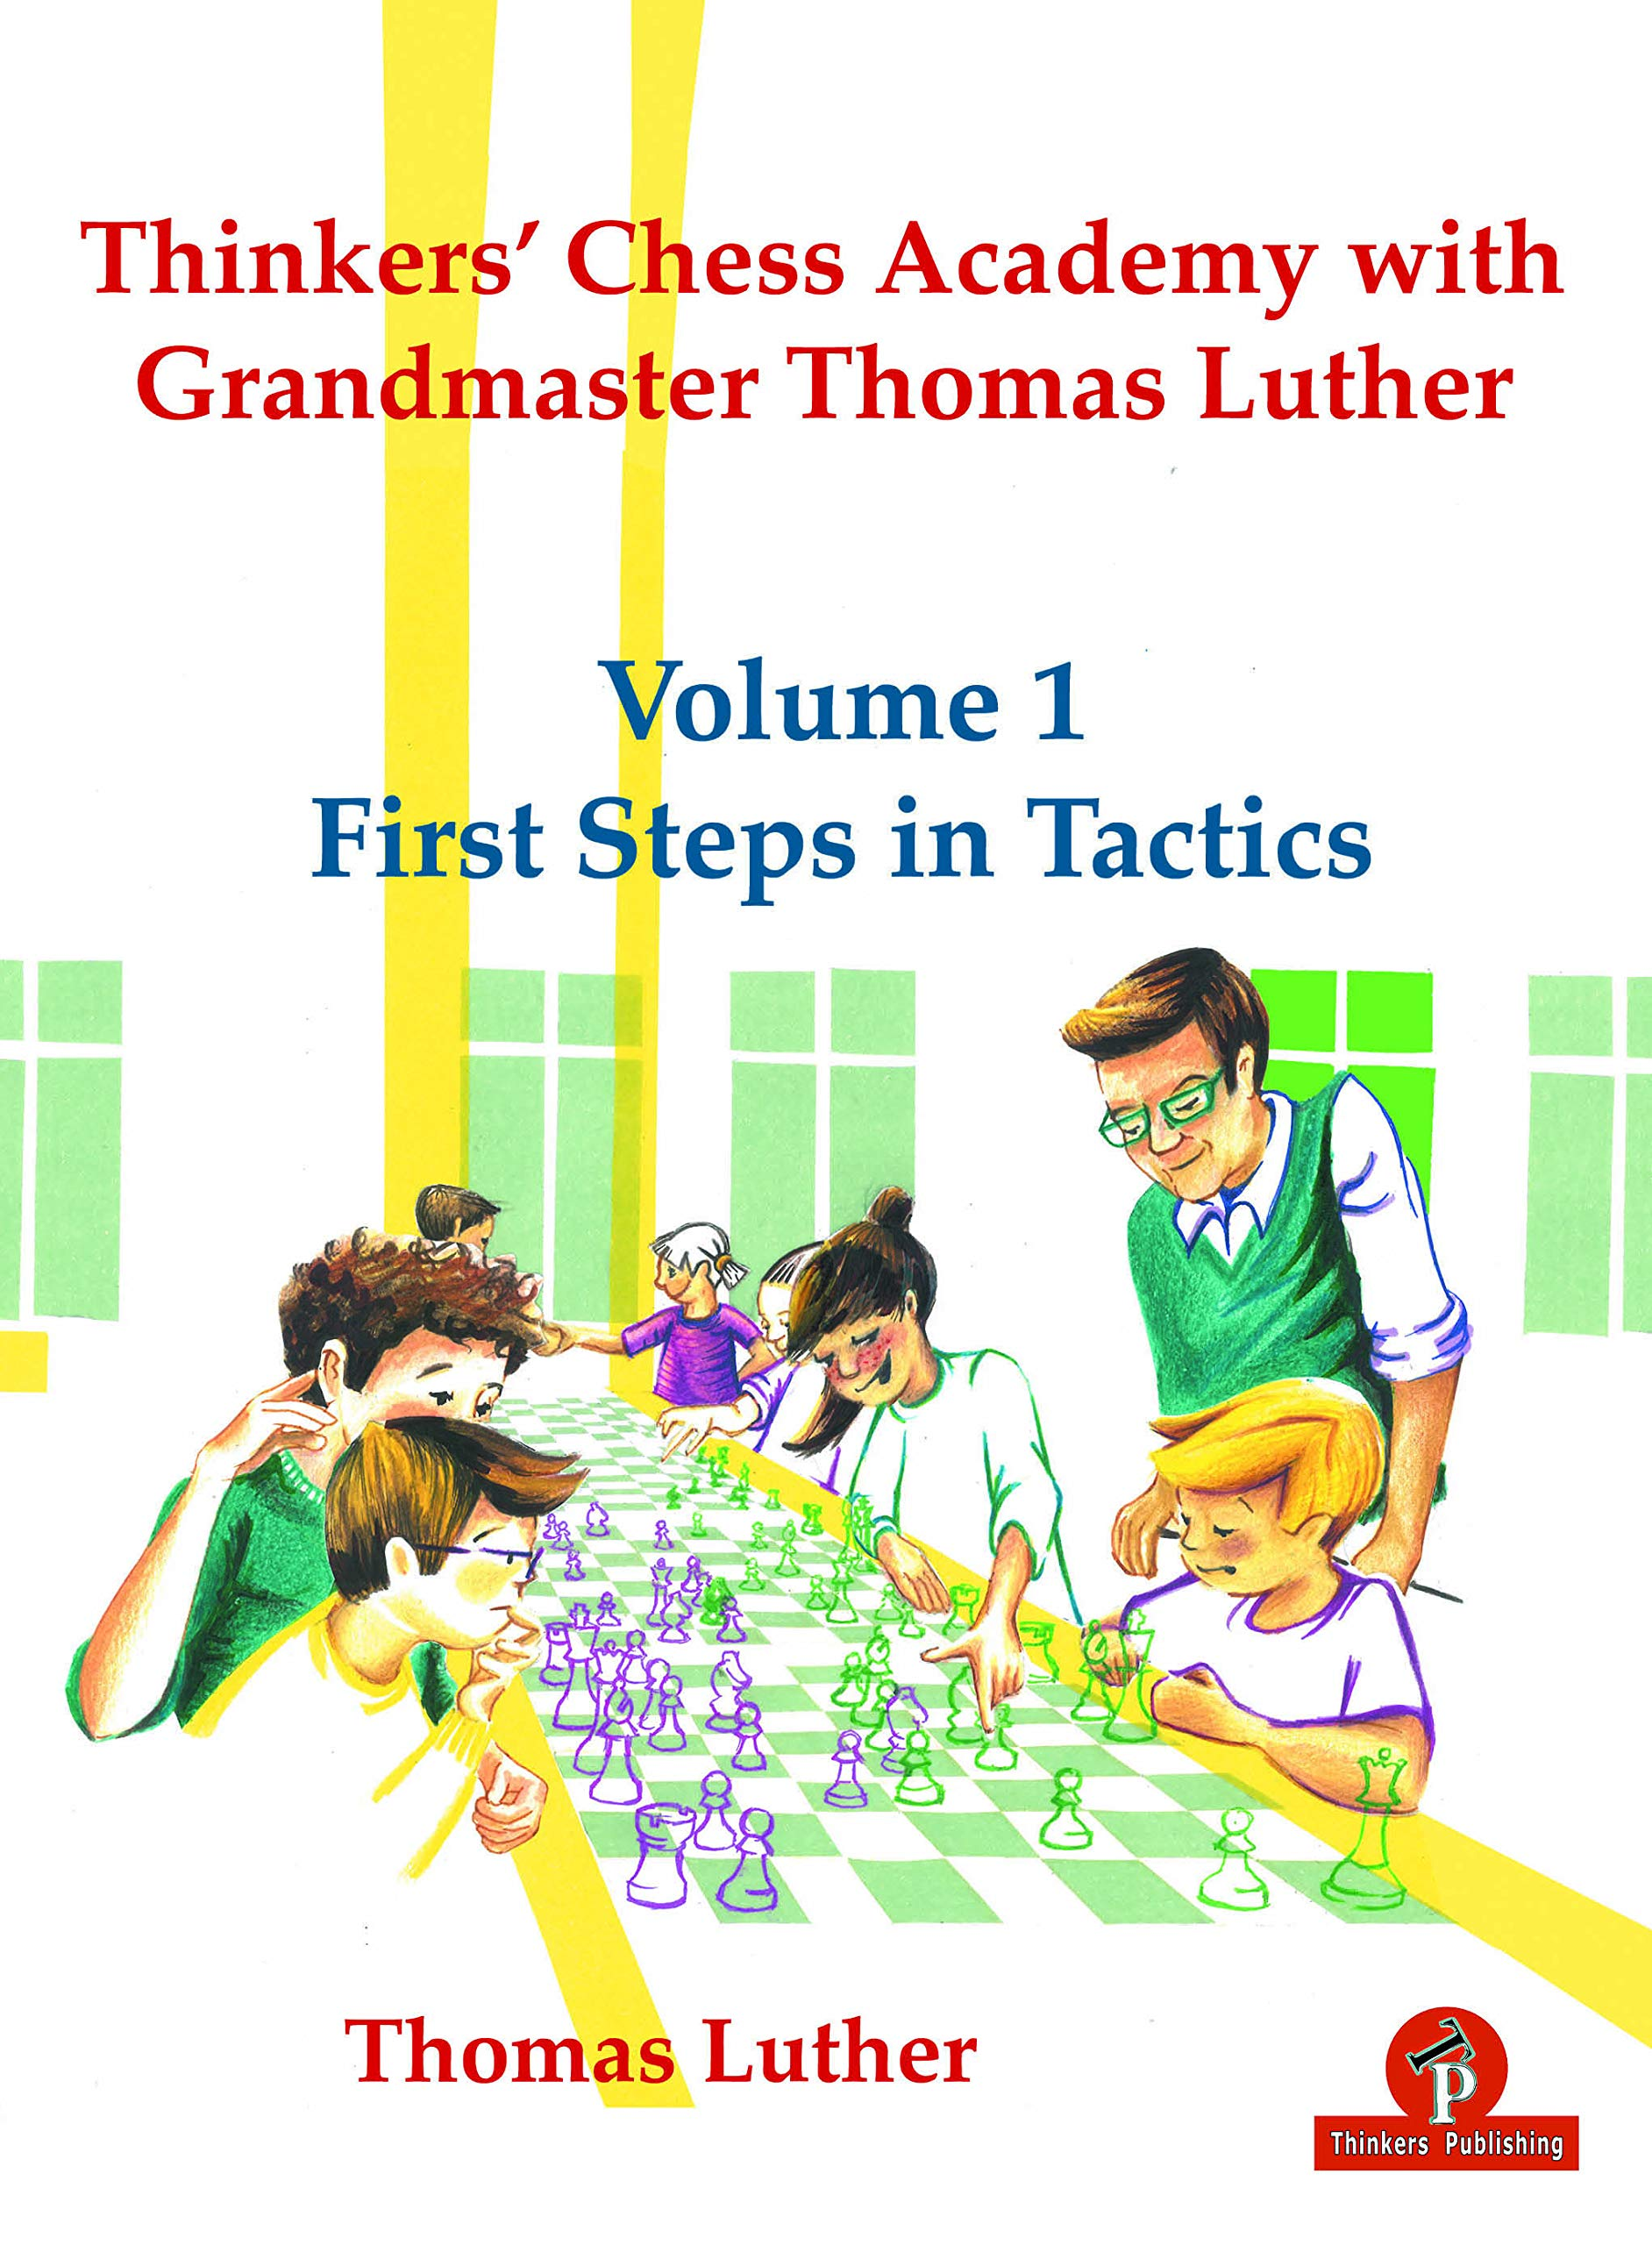 Thinkers' Chess Academy with Grandmaster Thomas Luther - Volume 1 First Steps in Tactics